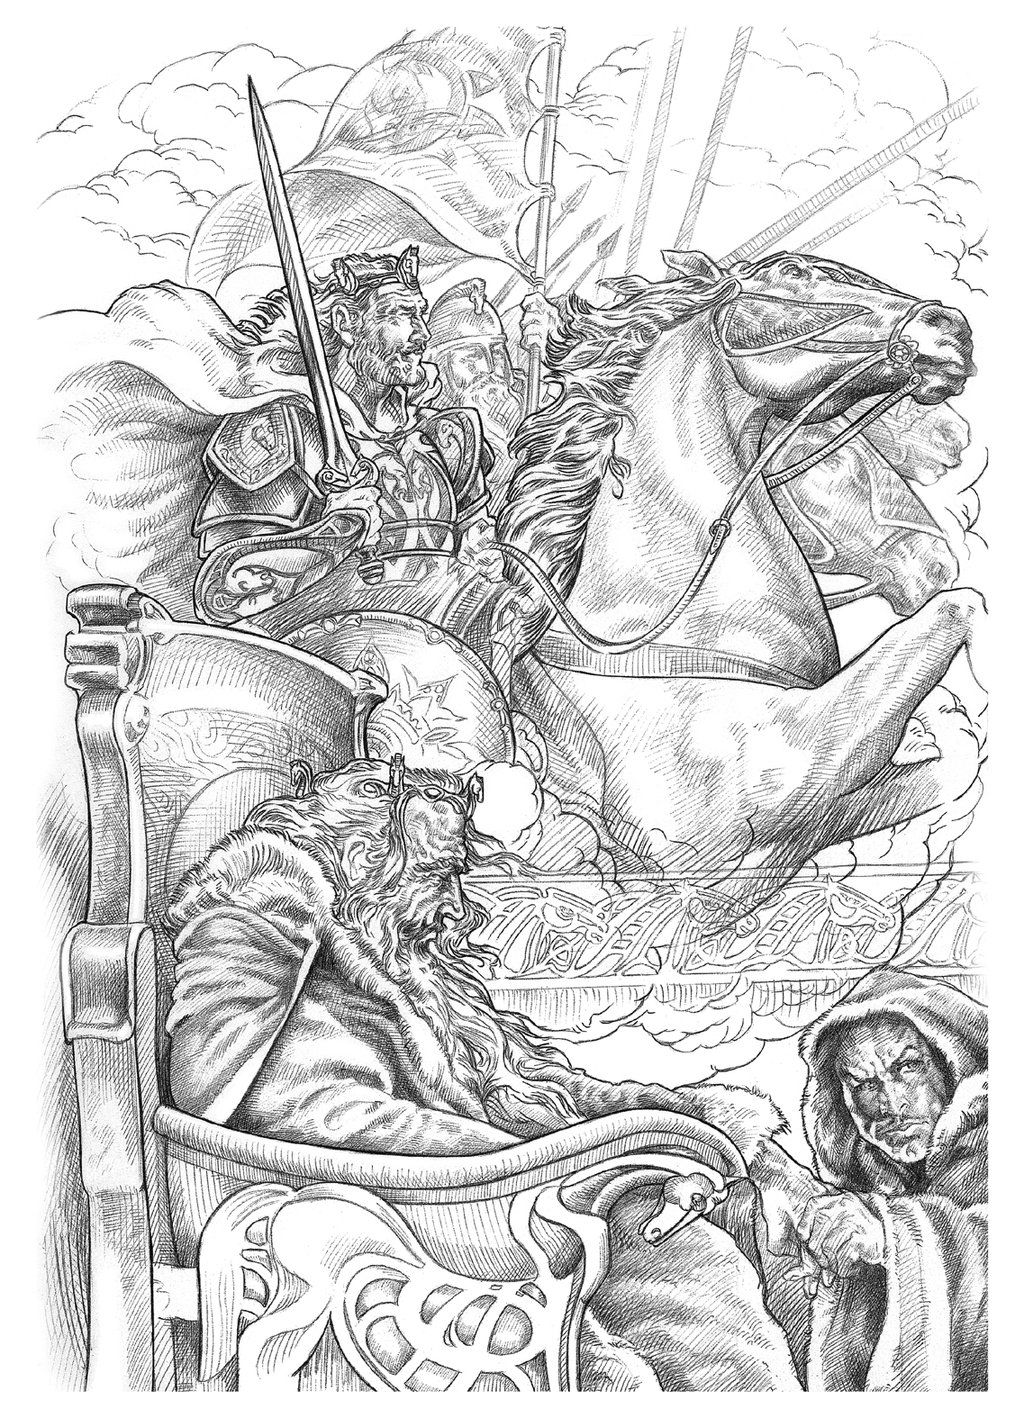 Theoden By Nachocastro On Deviantart Lord Of The Rings Tolkien Art Lotr Art